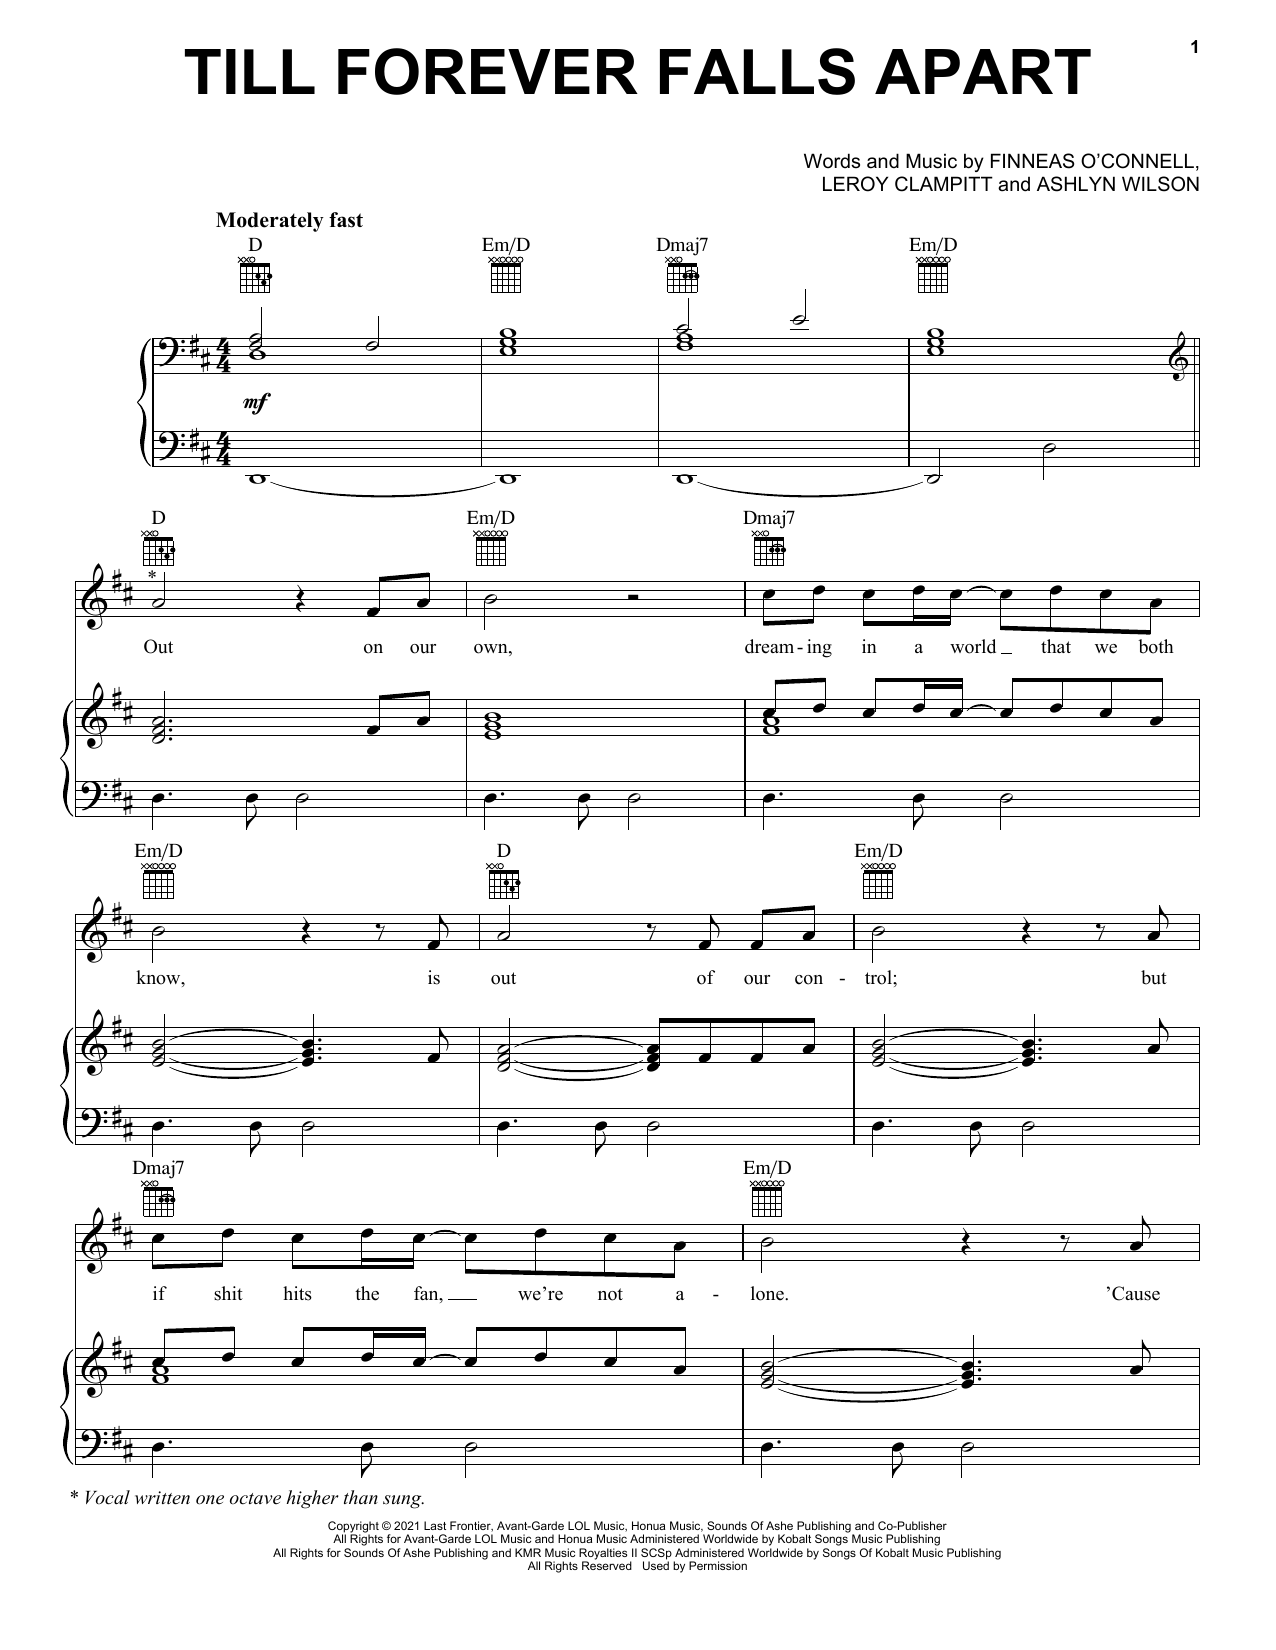 Ashe & FINNEAS Till Forever Falls Apart sheet music notes and chords. Download Printable PDF.